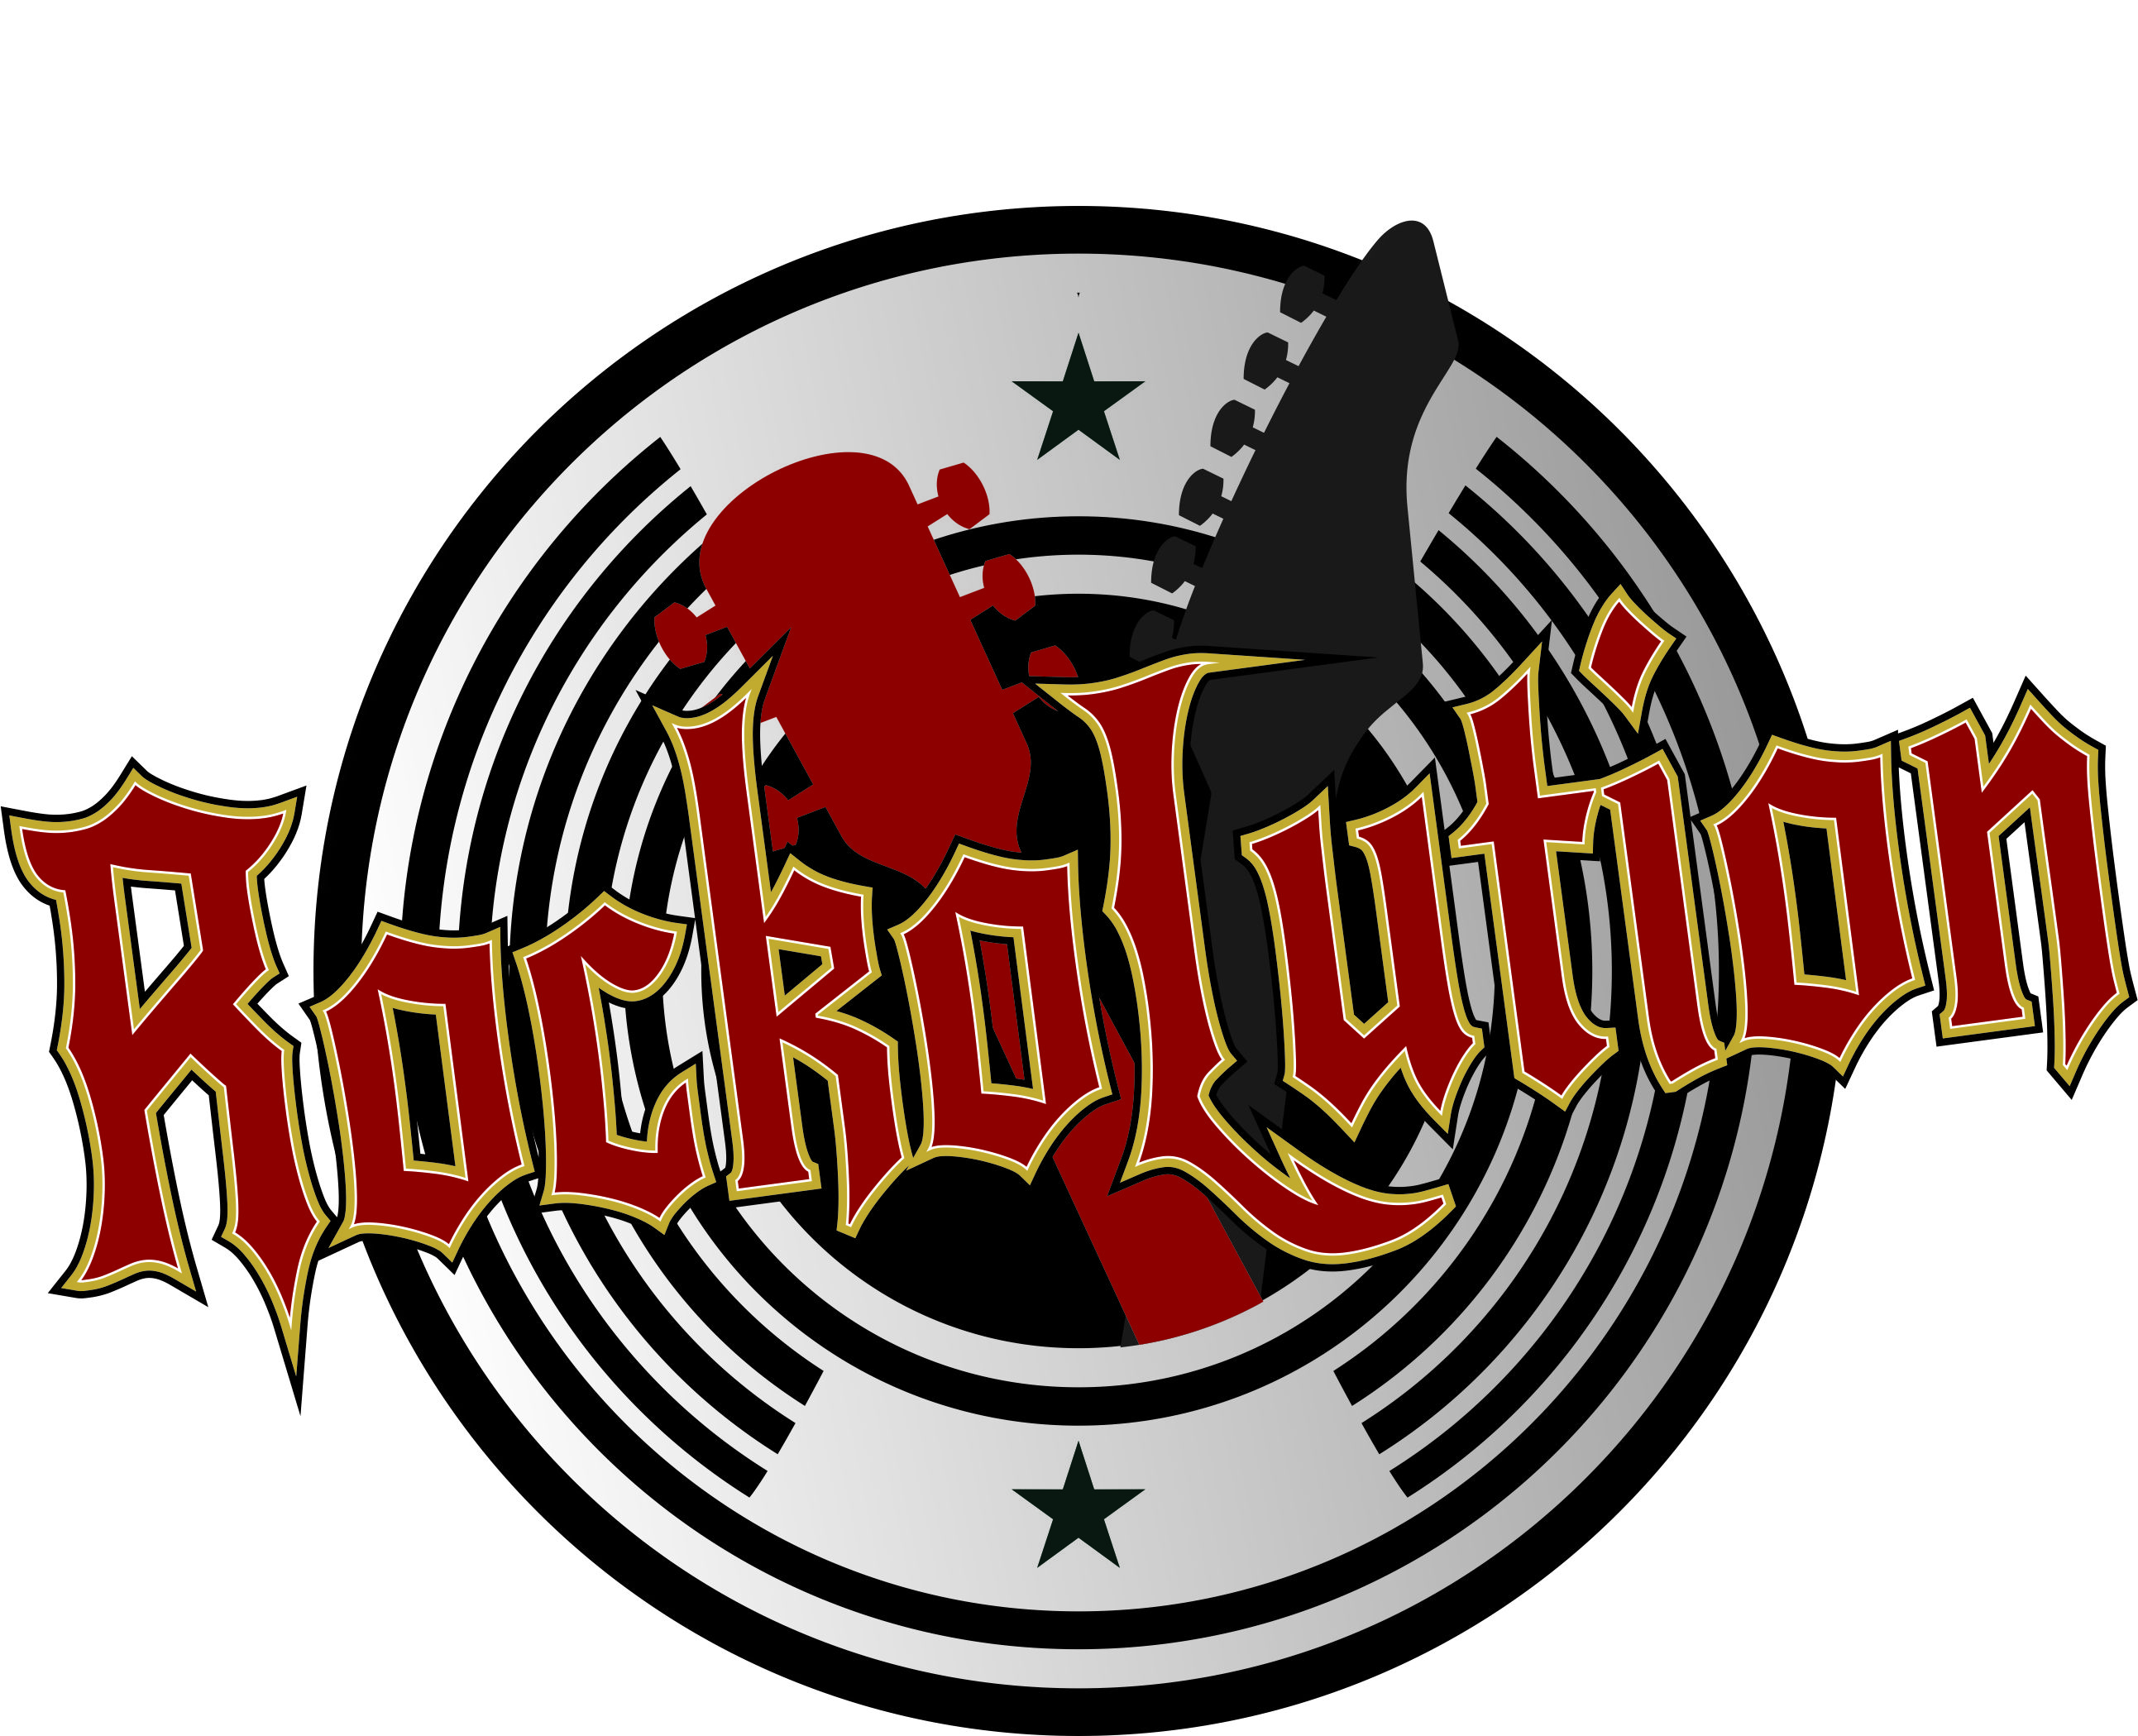 Rockolution logo transparent